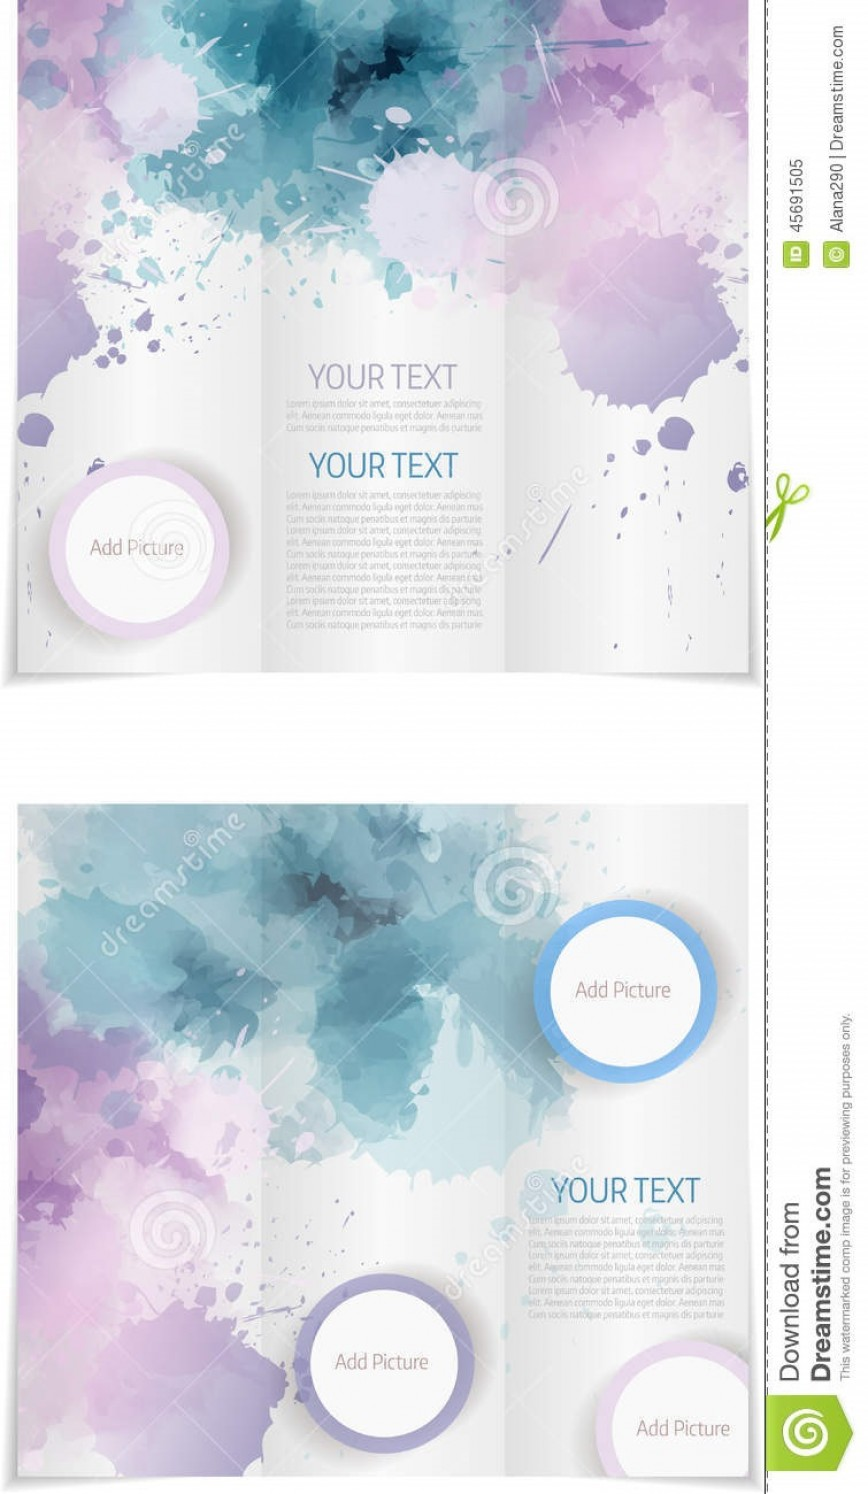 009 Stupendou Publisher Brochure Template Free Inspiration  Tri Fold Download Microsoft M868